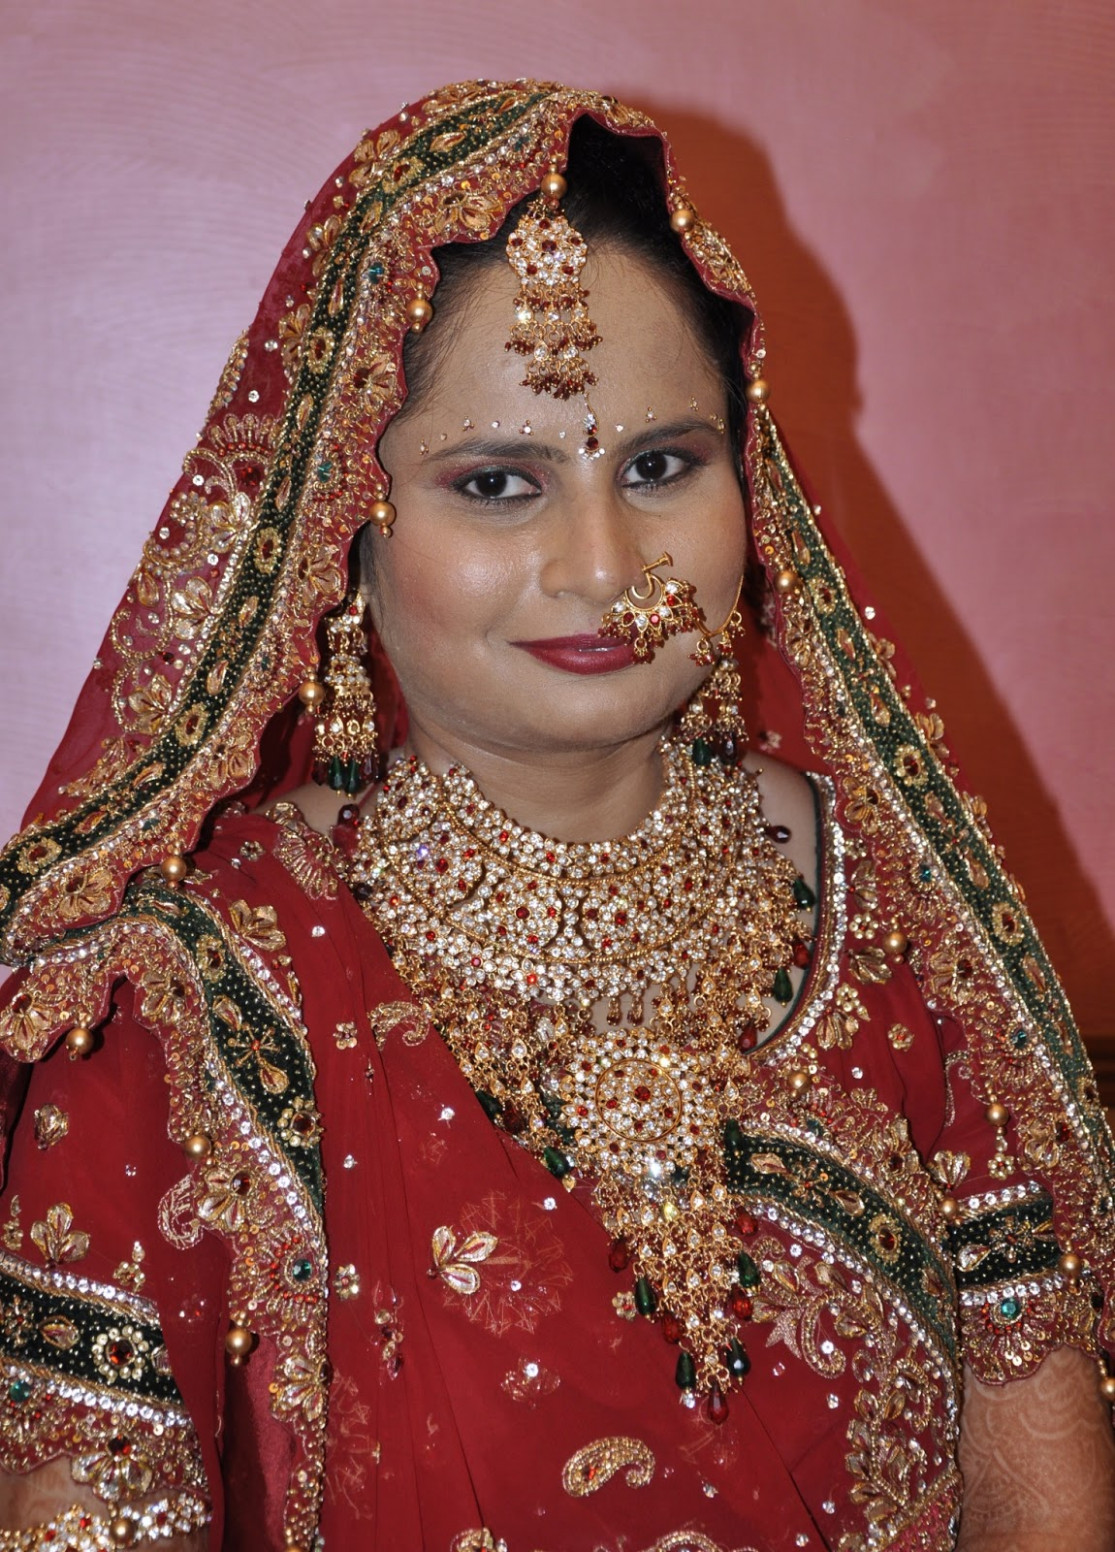 Local style: Such different Indian brides